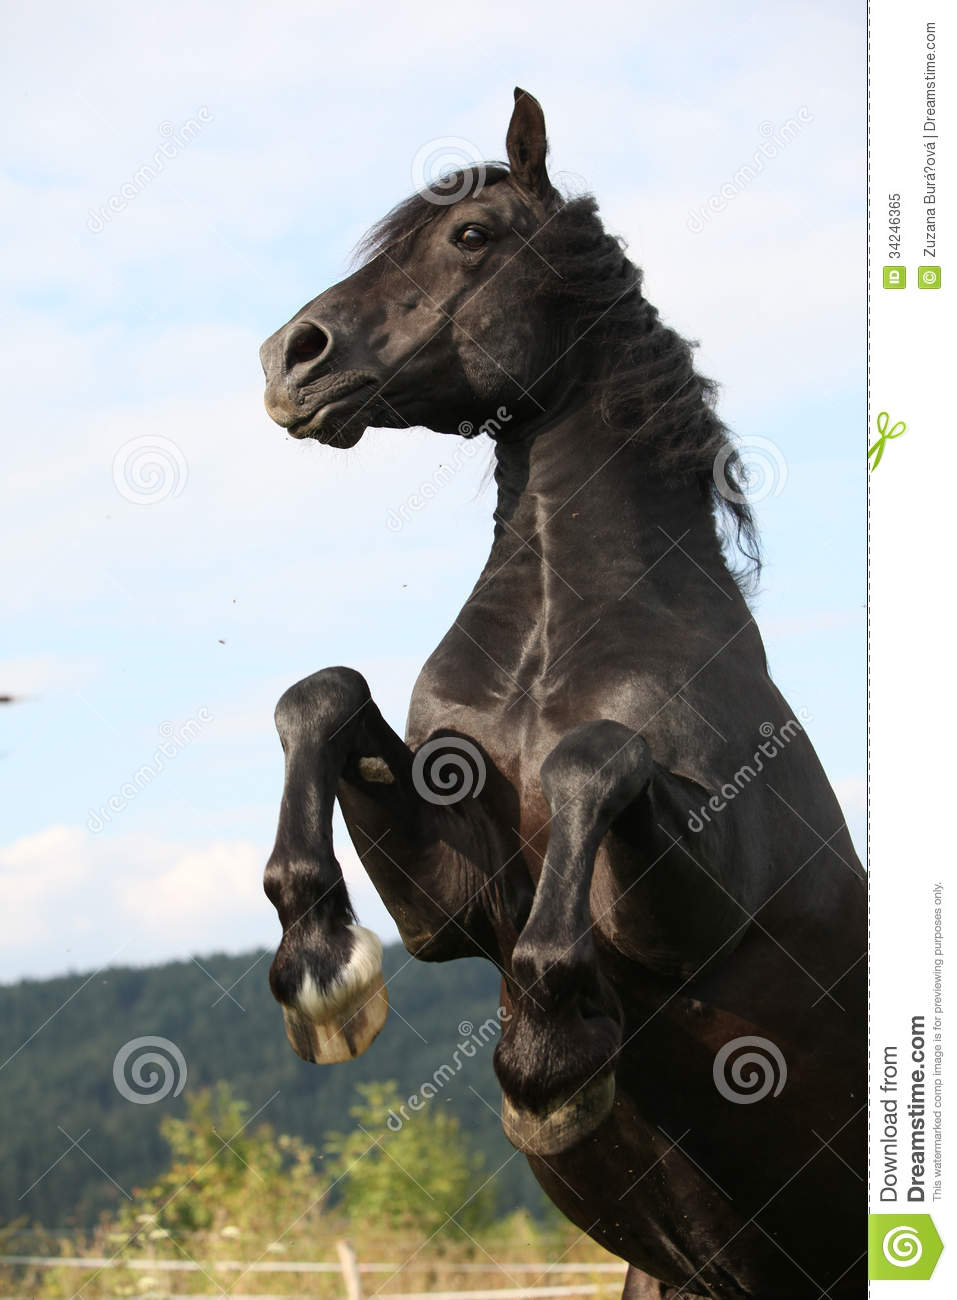 Angry horse - photo#11